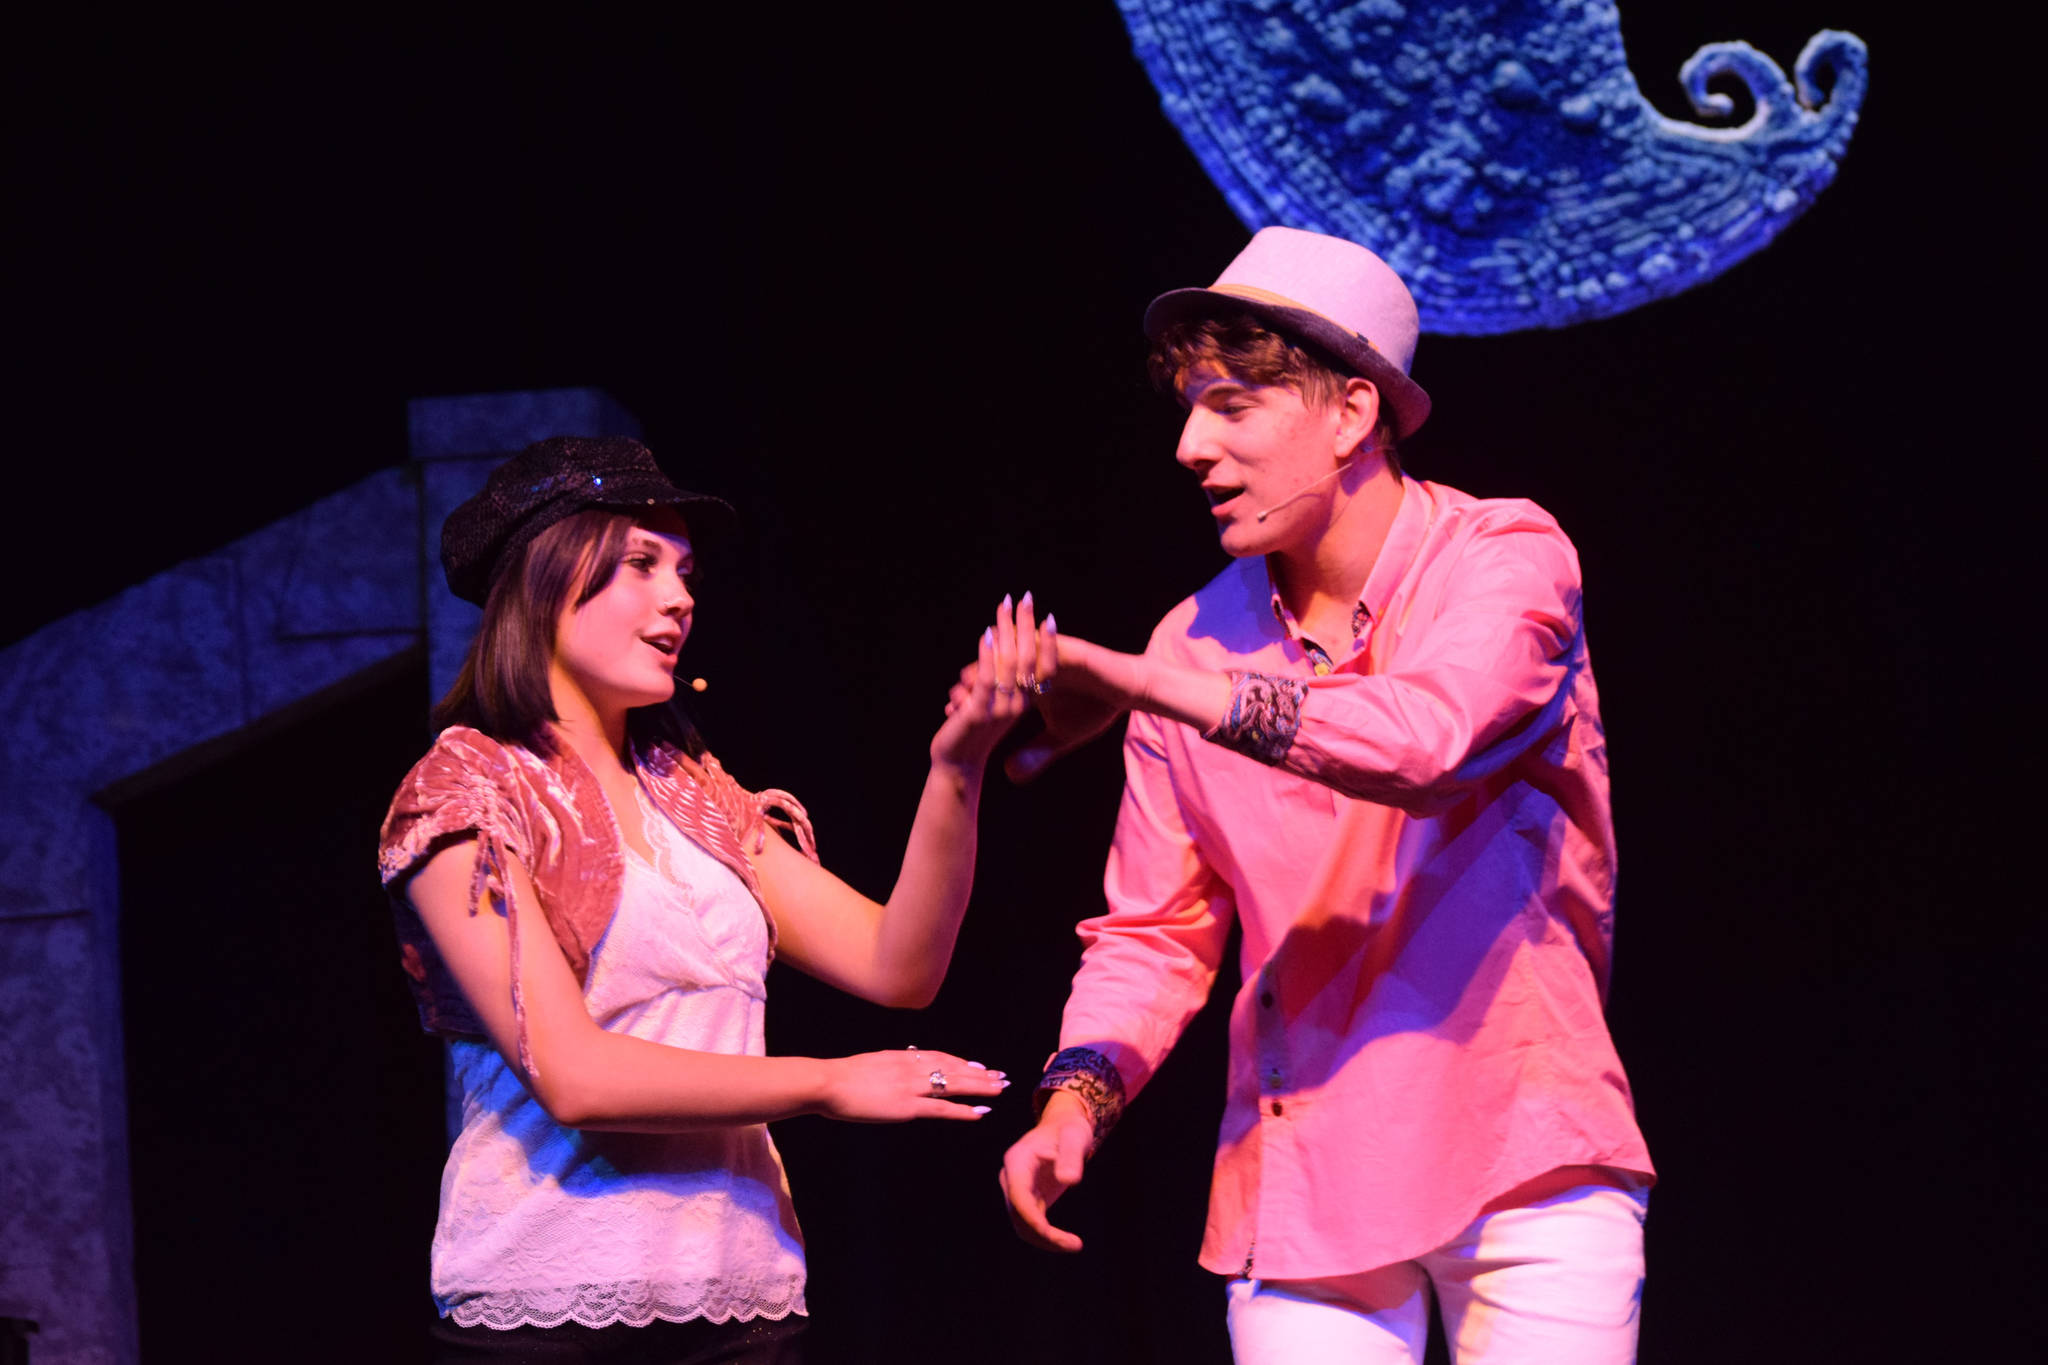 """Shylea Freeman (left) and Dwyght Mullins sing onstage as their characters Sharpay and Ryan Evans in the Nikiski Middle/High School's spring production of """"High School Musical"""" in Nikiski, Alaska, on Wednesday May 5, 2021. (Camille Botello / Peninsula Clarion)"""